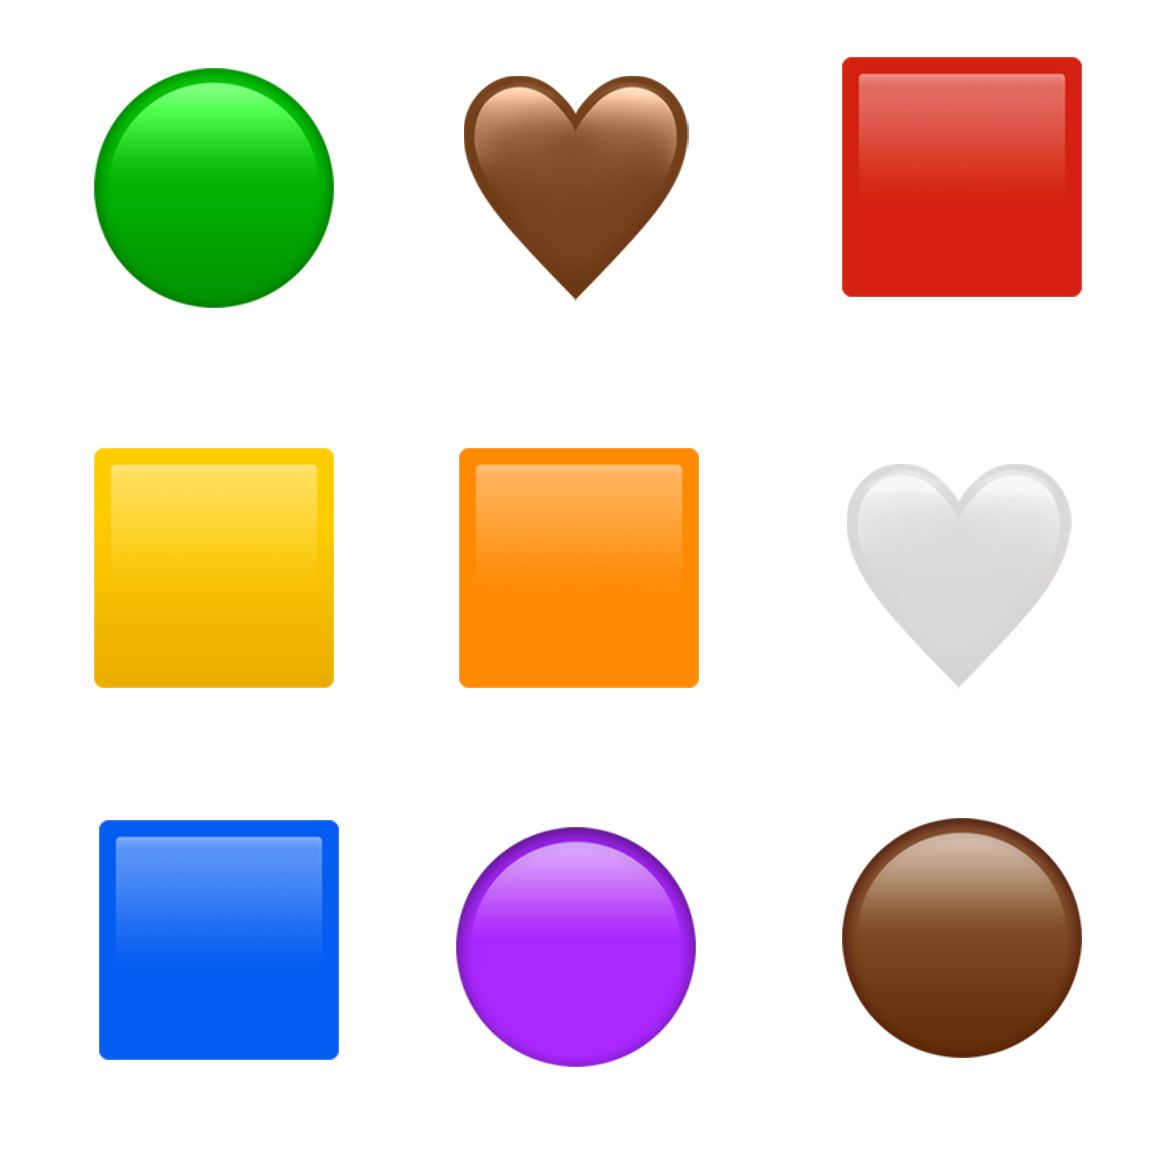 Emojipedia-Apple-iOS-13.2-Emoji-Changelog-Color-Shapes